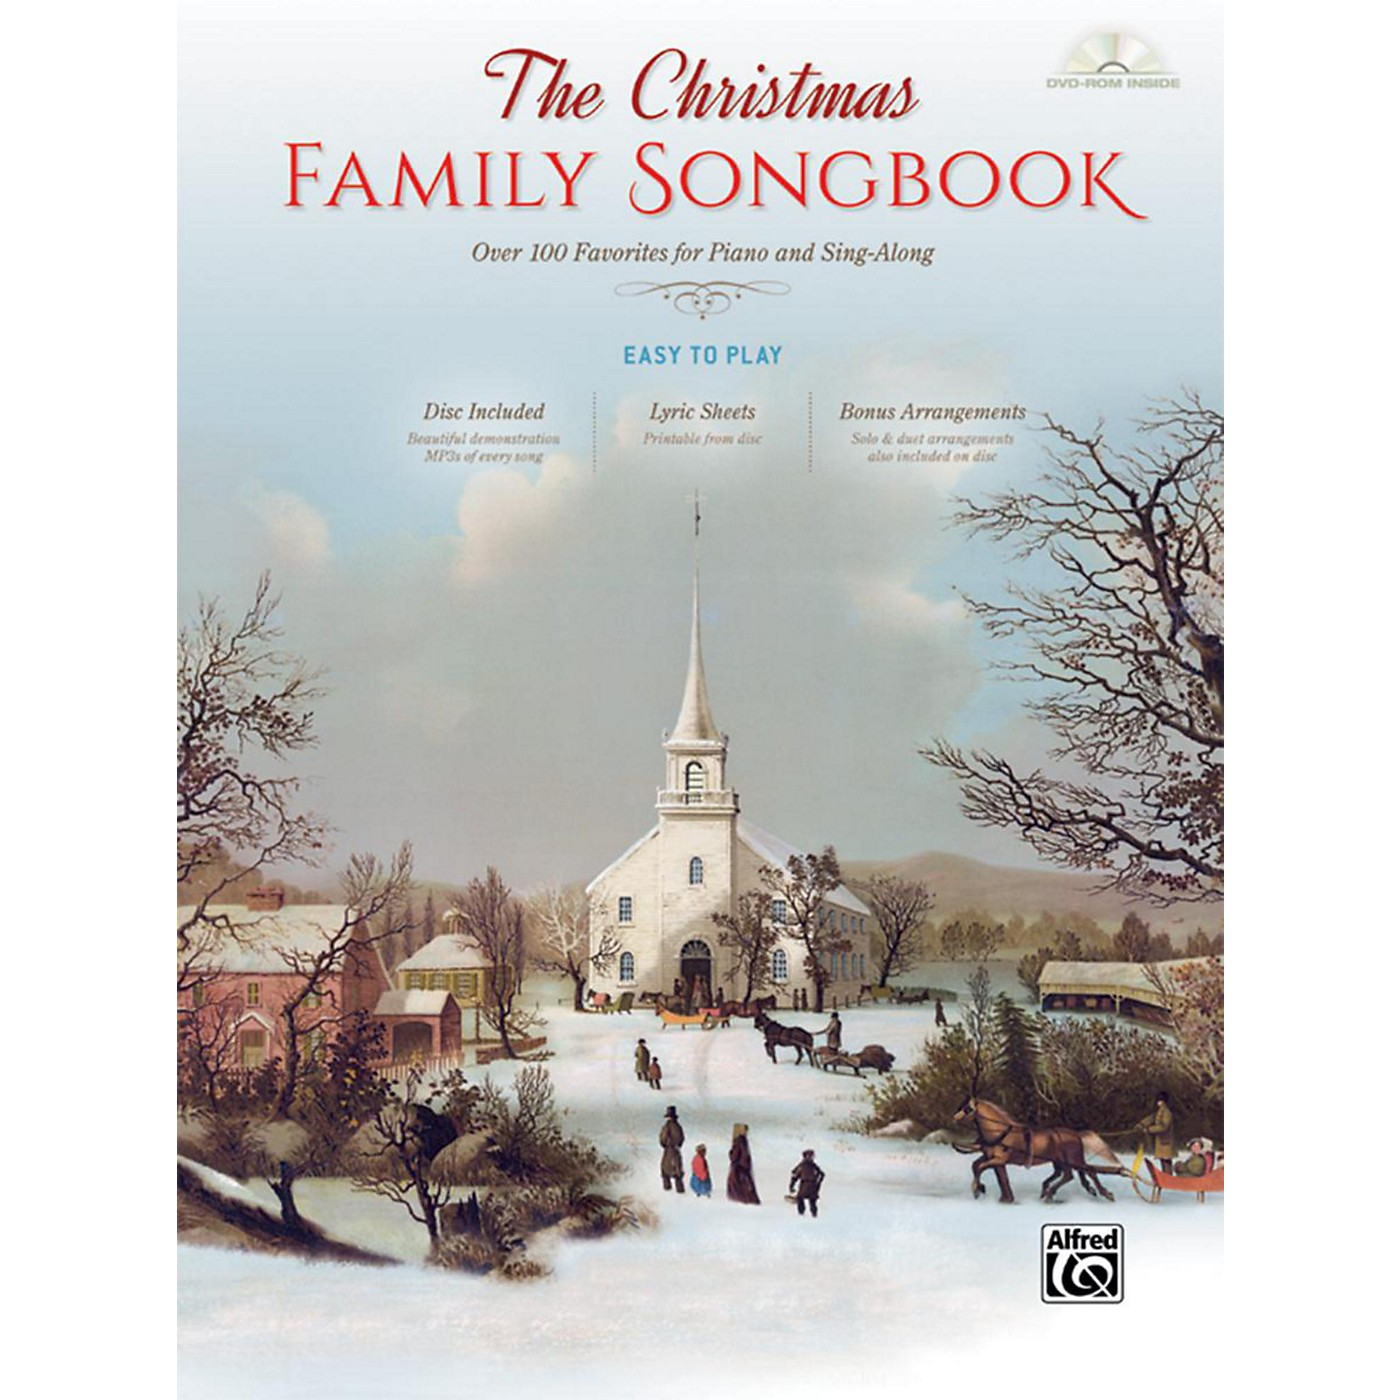 Alfred The Christmas Family Songbook Hardcover Easy Piano/Vocal Book & DVD-ROM thumbnail